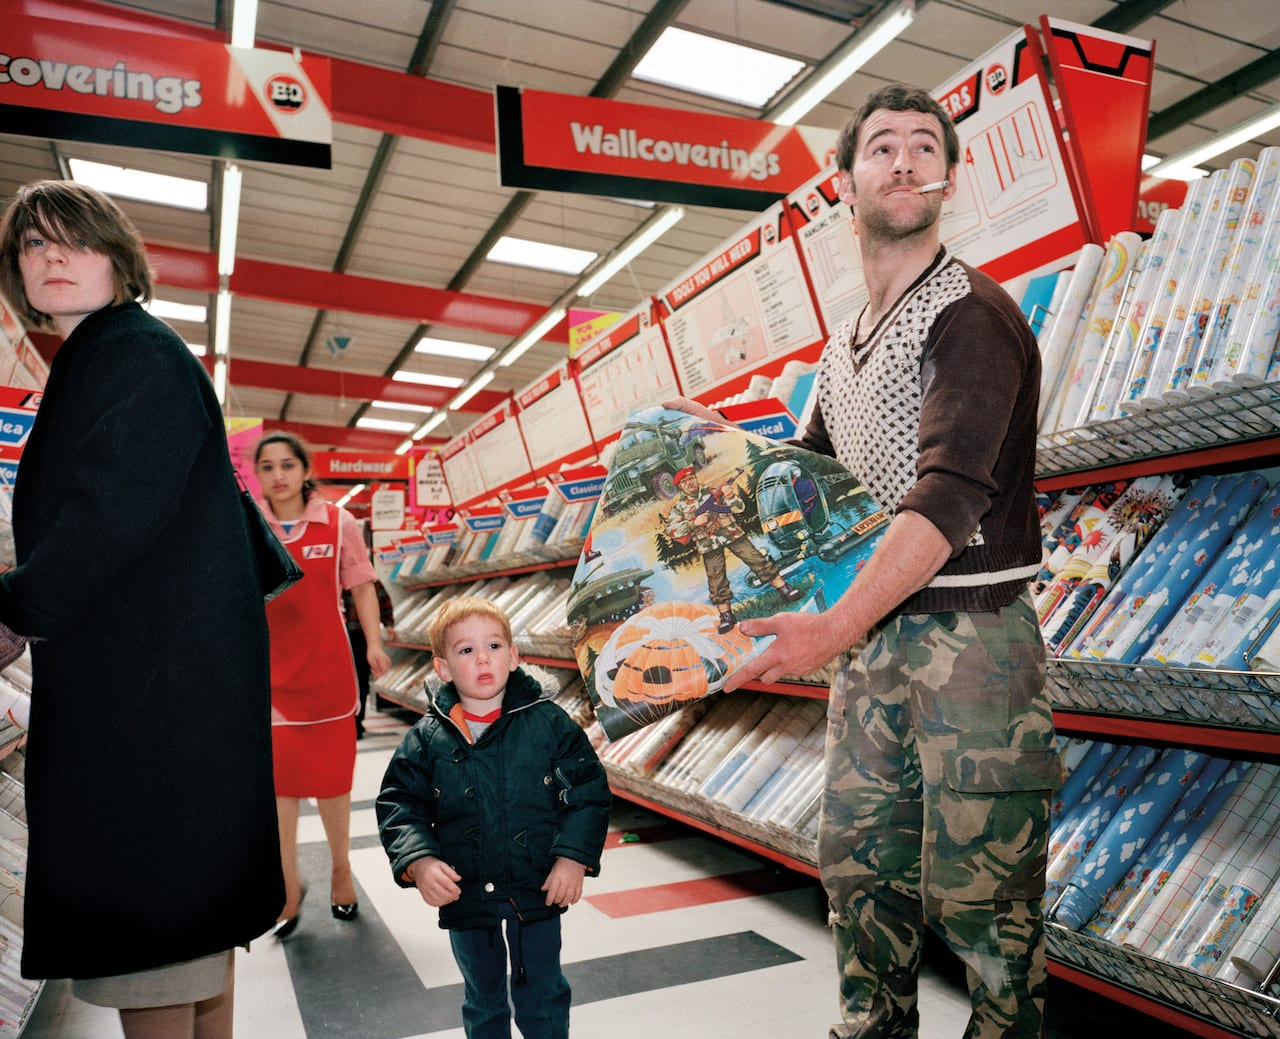 Paul Reas' Fables of Faubus – British Journal of Photography